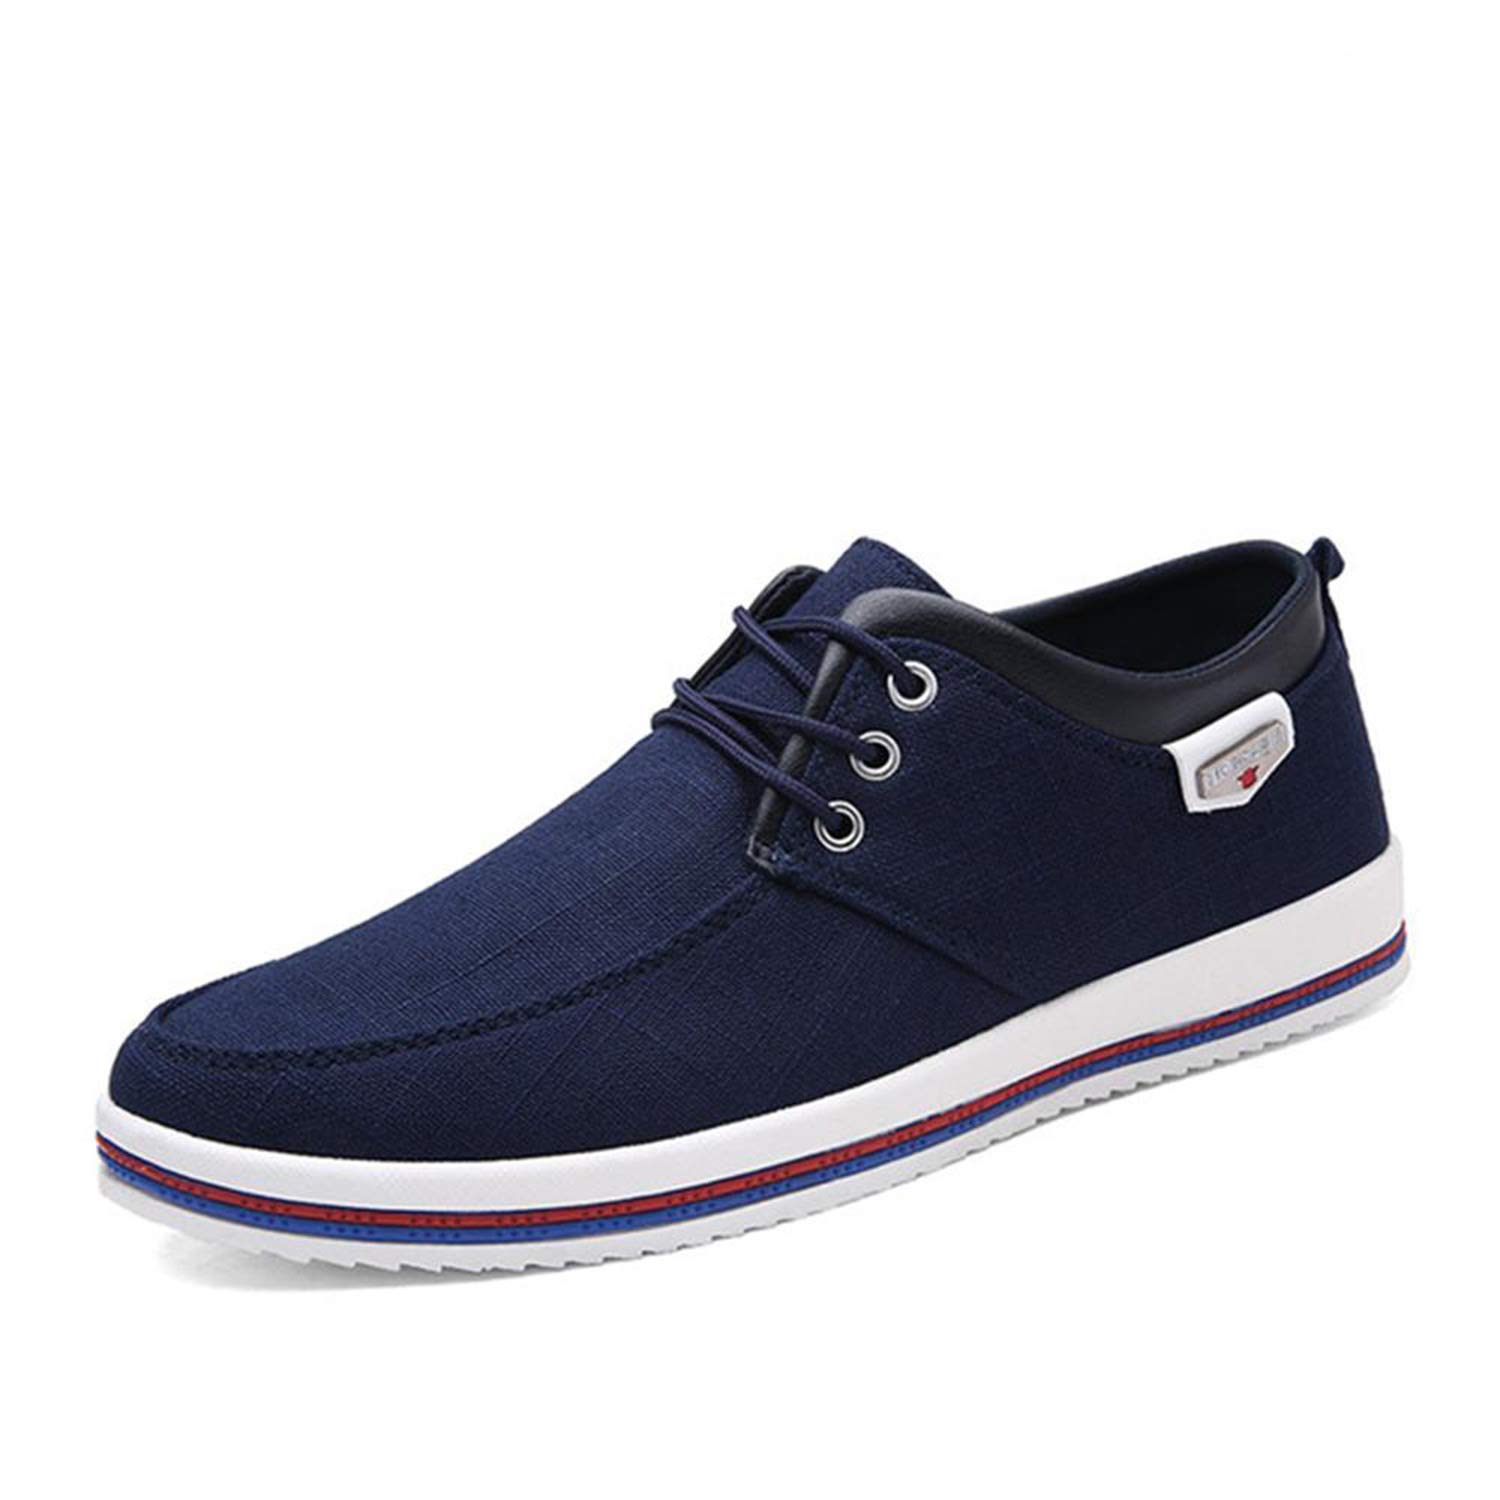 Mens Flats Casual Men Shoes Handmade Moccasins Shoes for Male